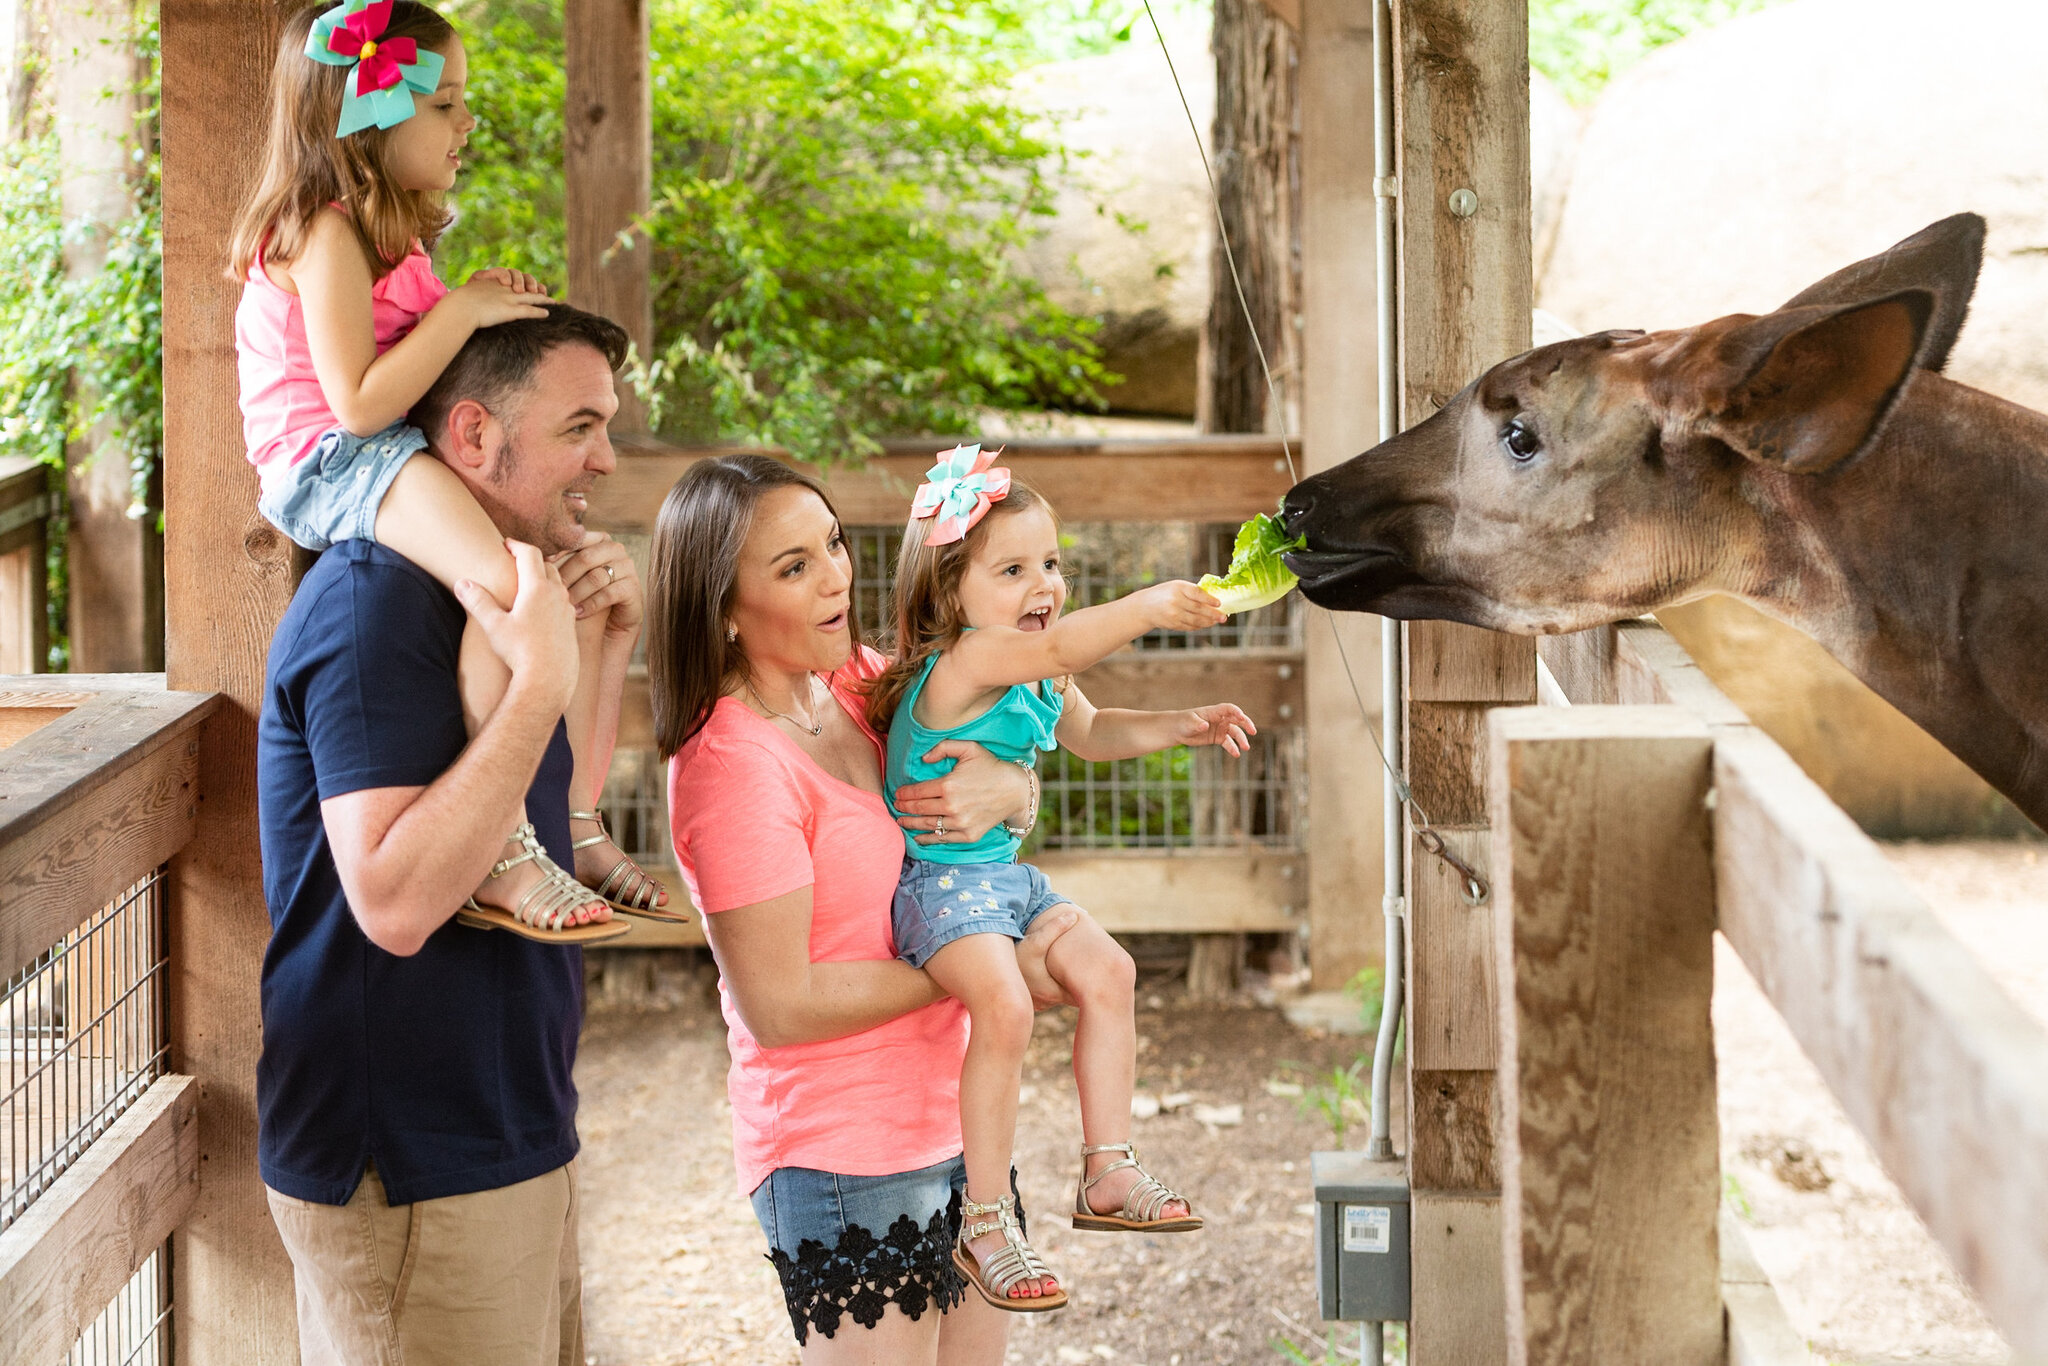 San Antonio Zoo offering discounted admission to locals today